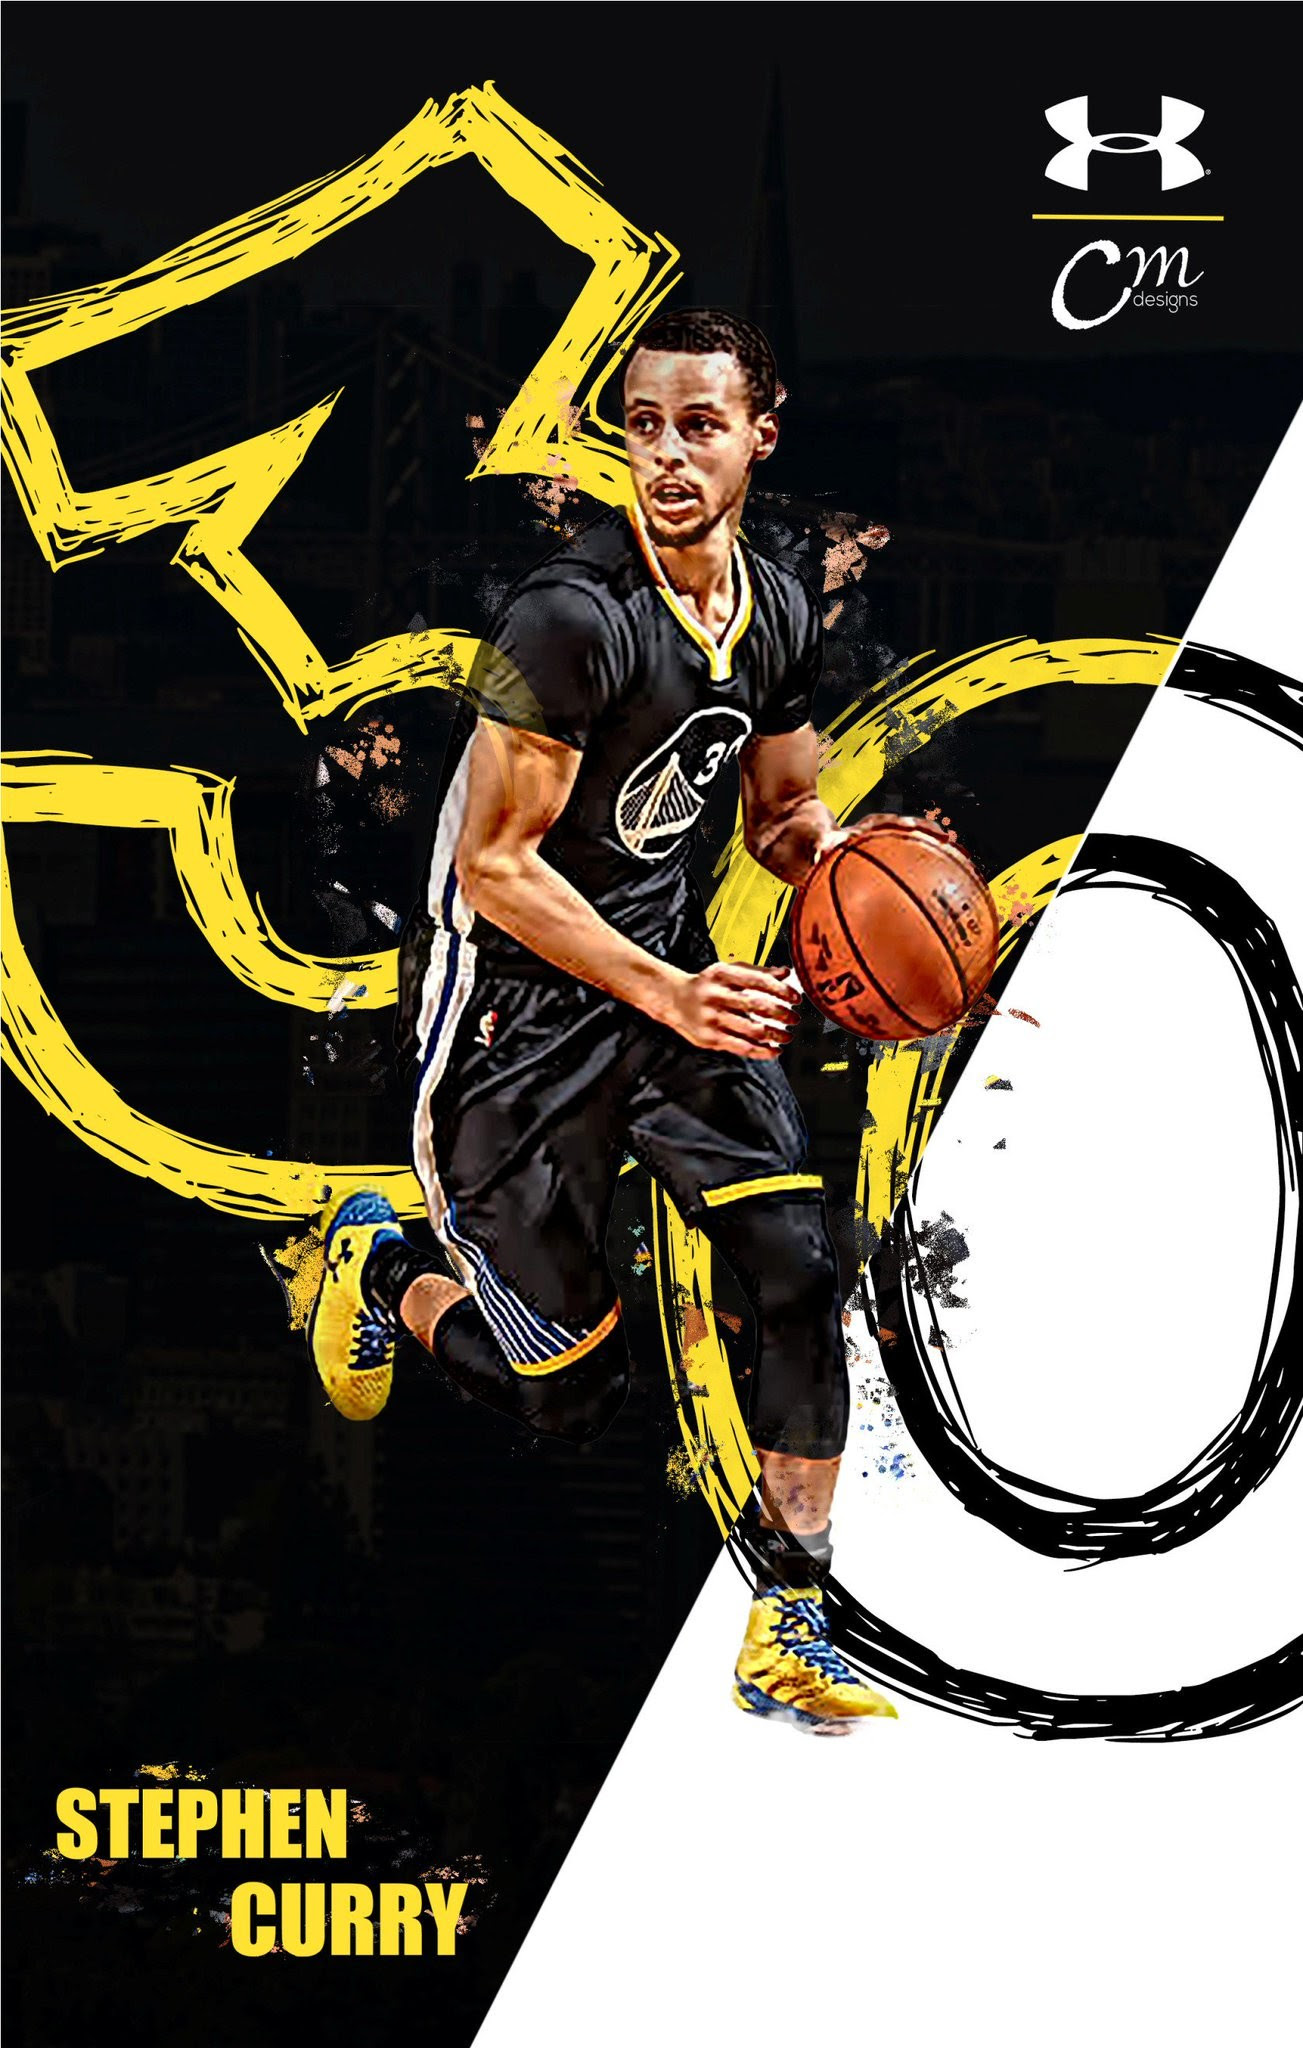 Stephen Curry Dunk Wallpaper 81 Images